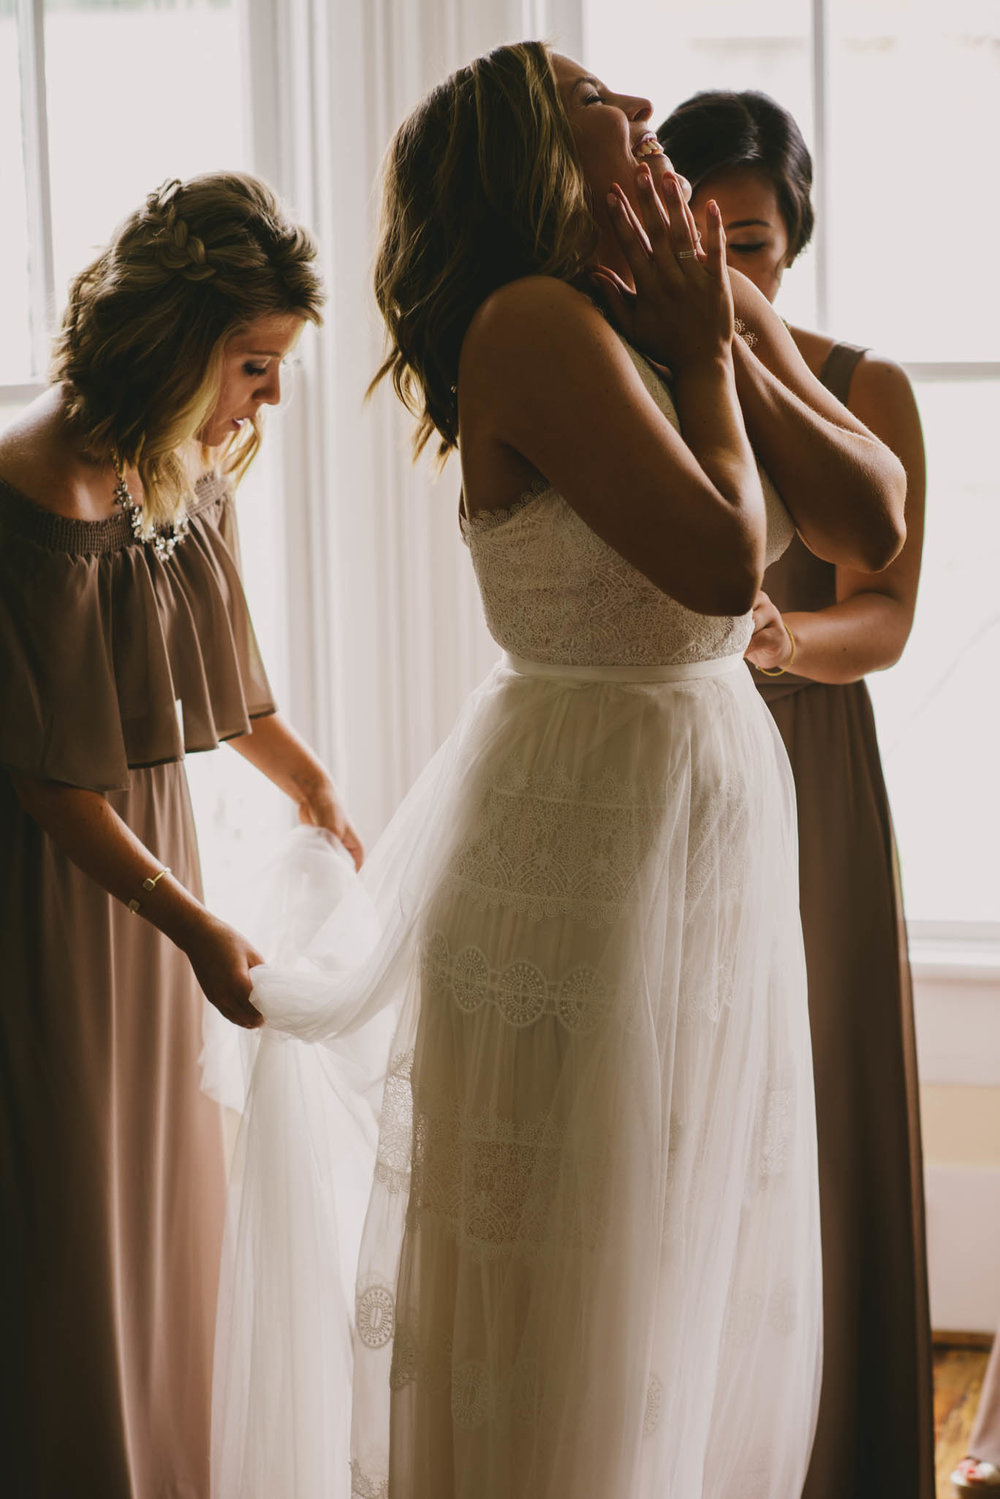 bride and her bridesmaids putting on the final touches of the dress before the wedding